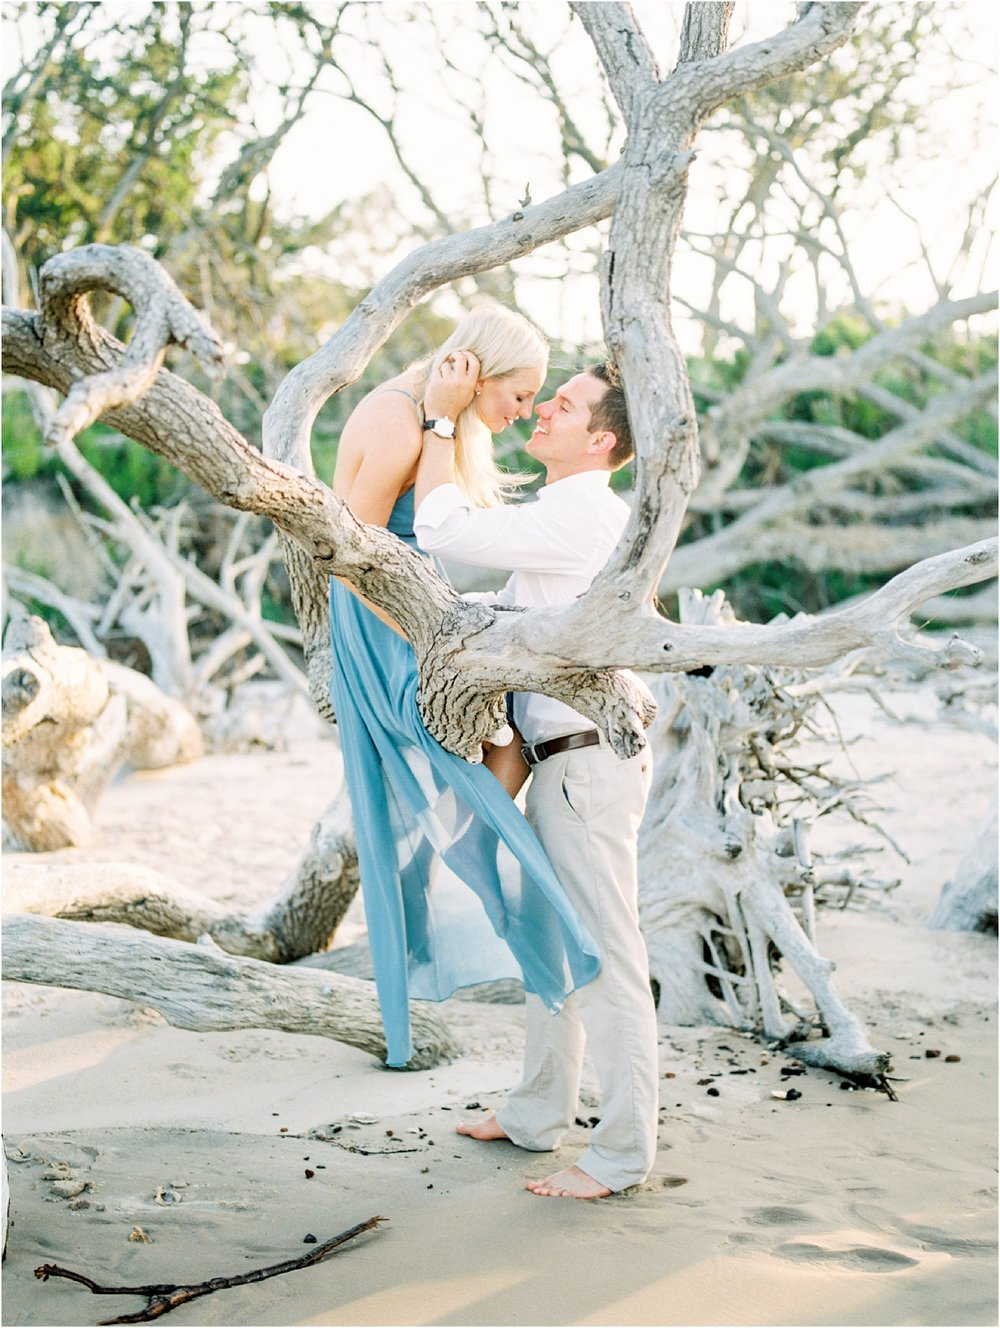 Lisa Silva Photography- Ponte Vedra Beach and Jacksonville, Florida Fine Art Film Wedding Photography- Engagement Shoot at Big Talbot Island_0014.jpg